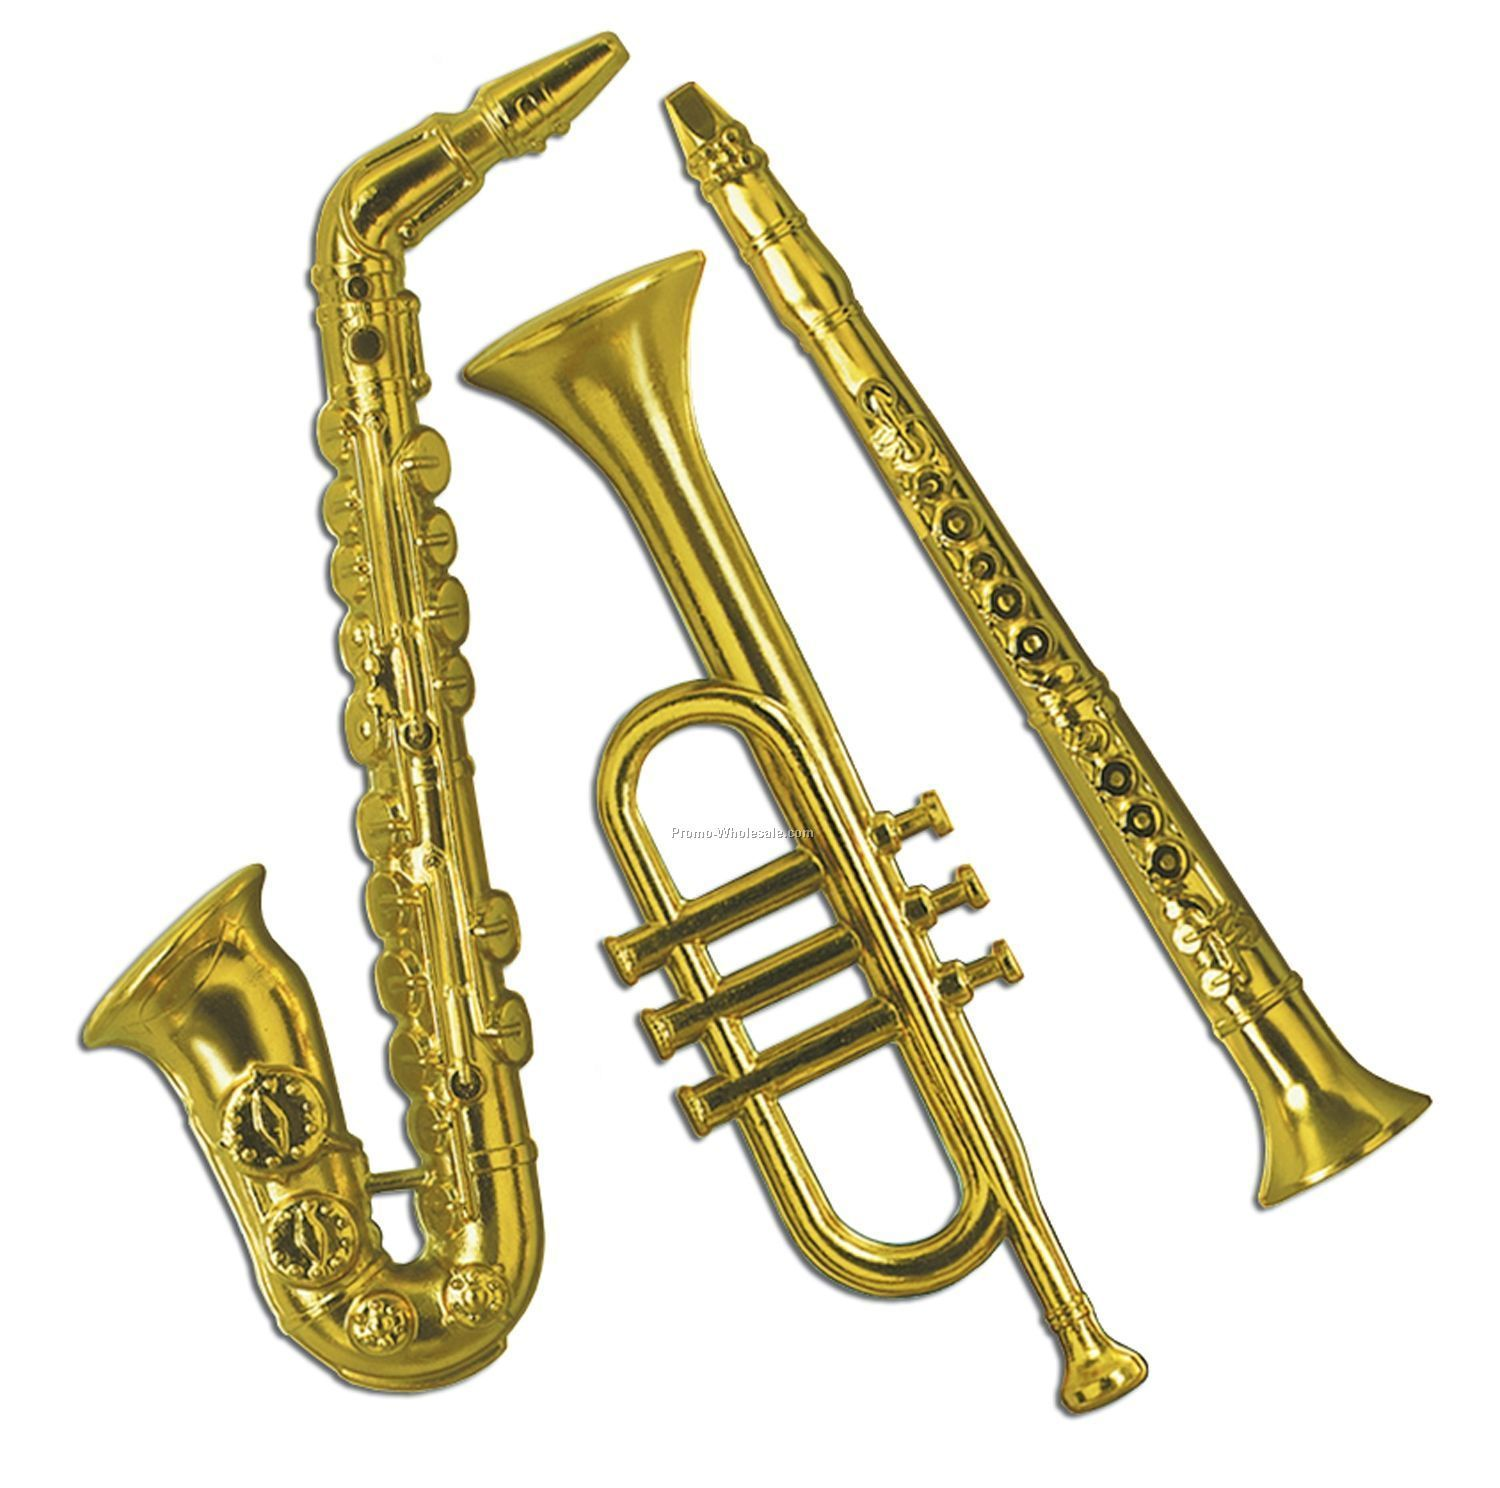 Musical instruments ornaments - 17 21 Gold Plastic Musical Instruments